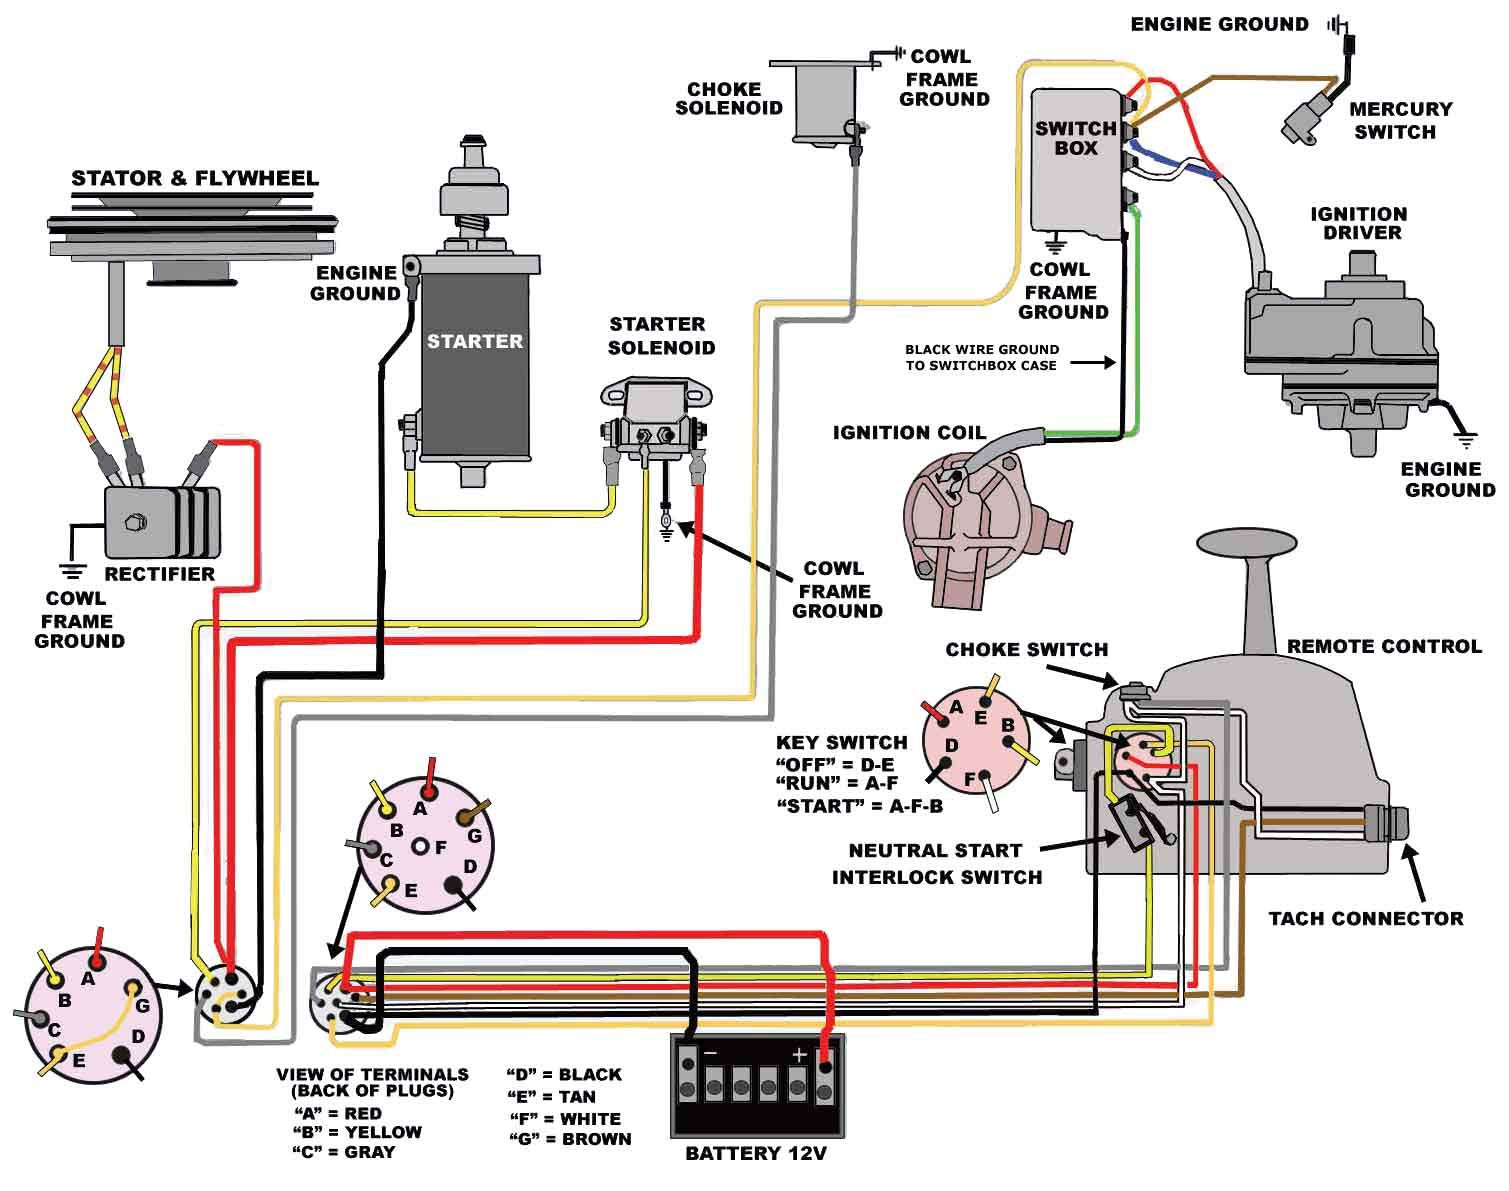 13cfb2d962bcd0c03103625817b7d51d mercury outboard wiring diagram diagram pinterest mercury 40 hp mercury outboard wiring diagram at suagrazia.org